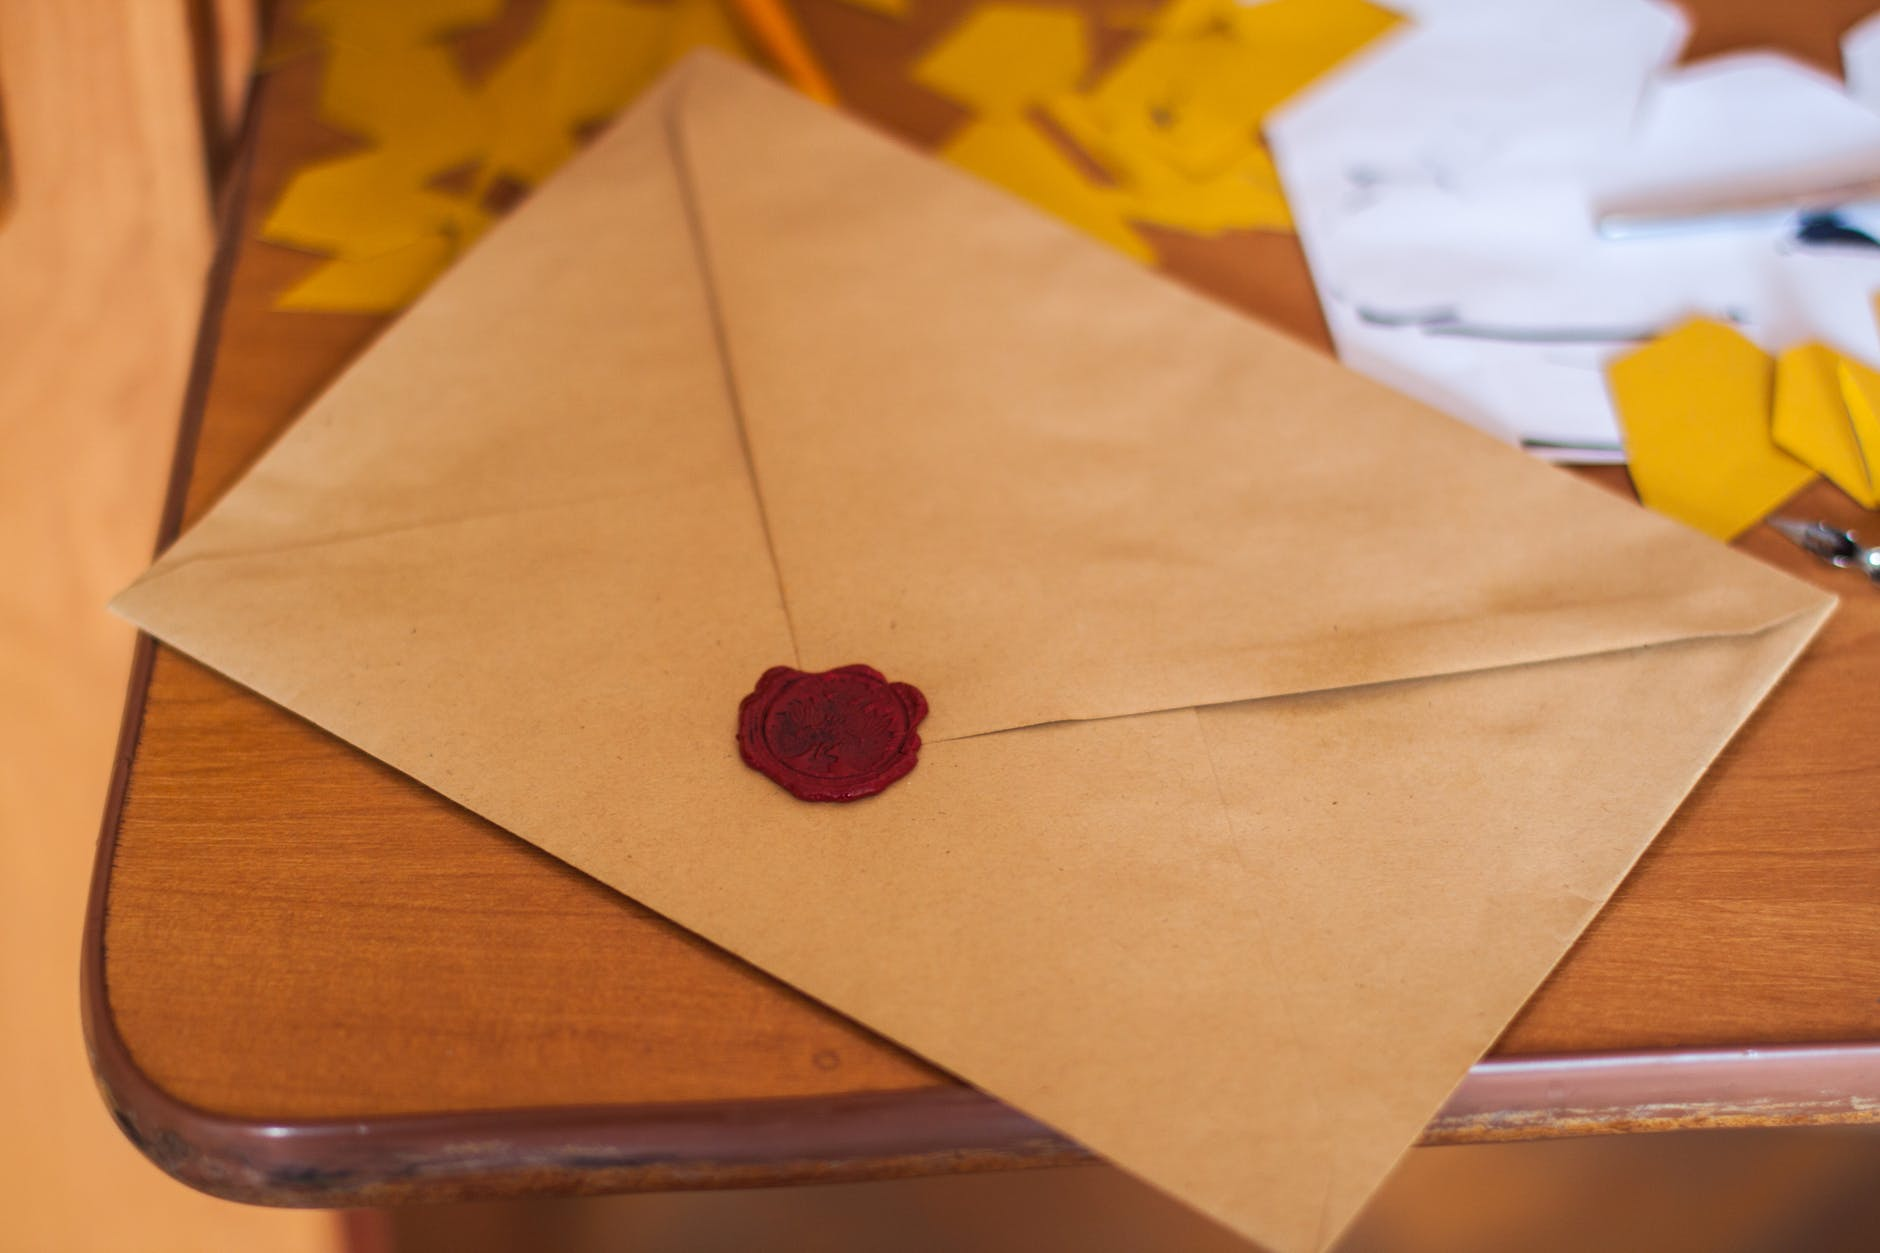 Scottie finally gave her a letter from her son.   Source: Pexels